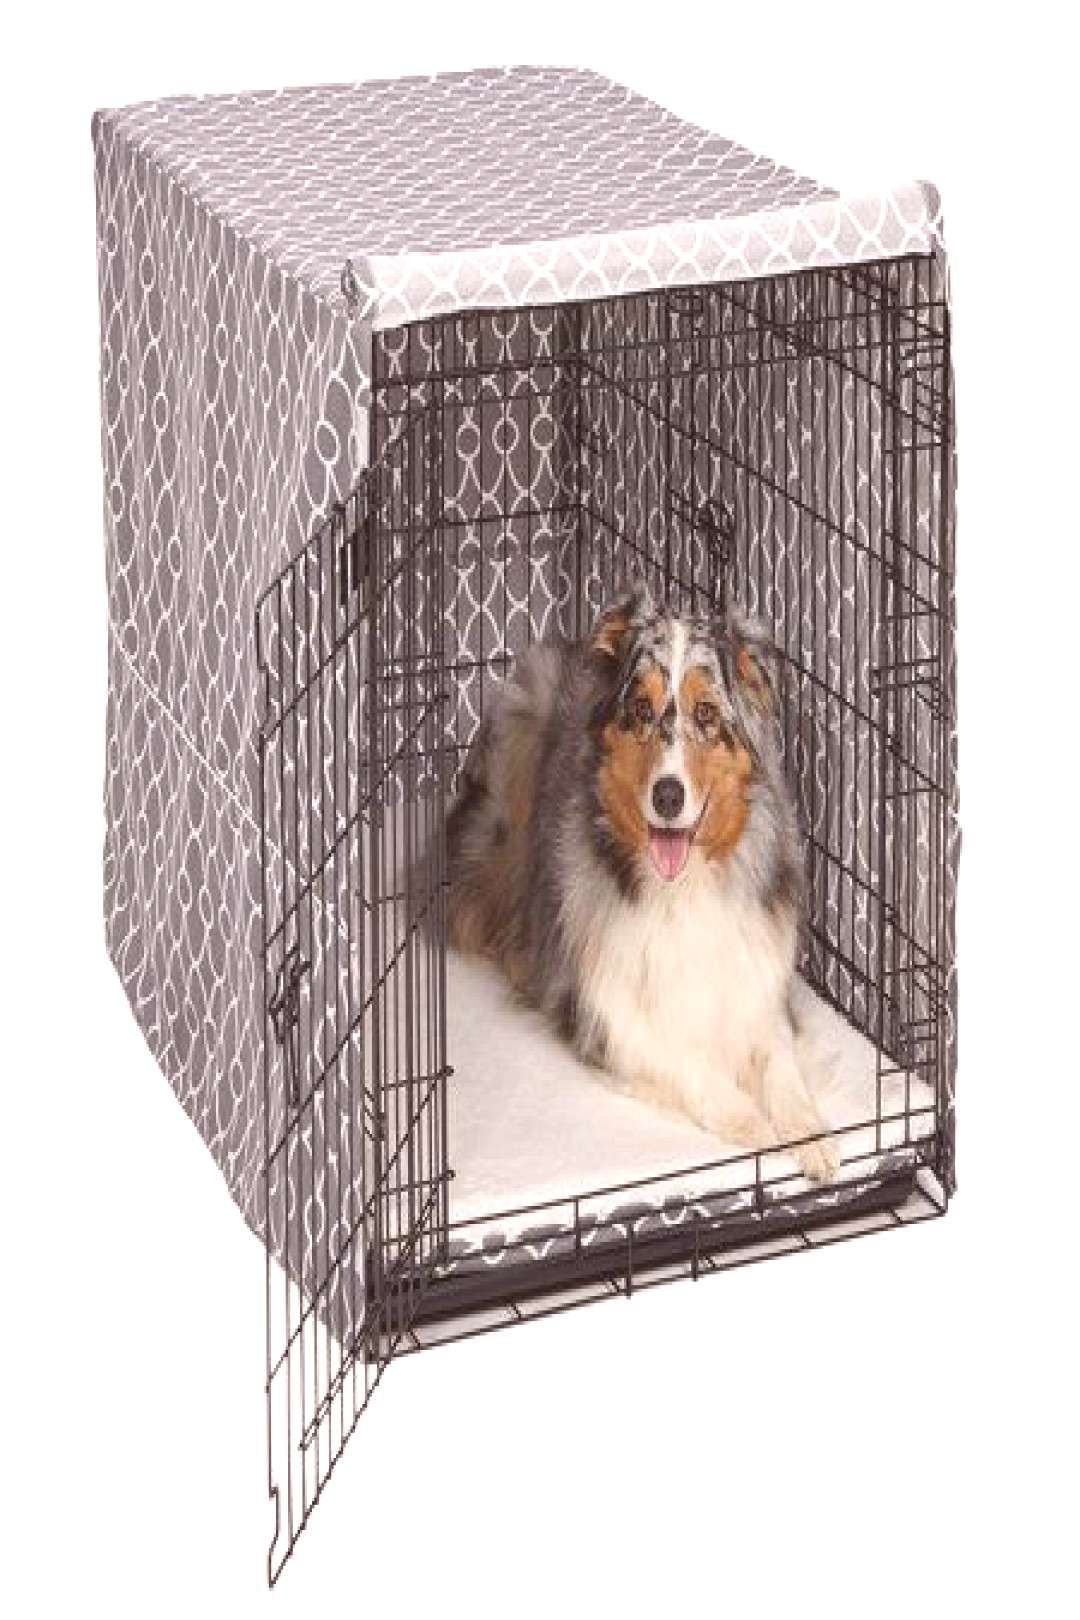 Midwest QuietTime Defender Covella Dog Crate Cover Gray 36 inch x 23 inch x 25 inch